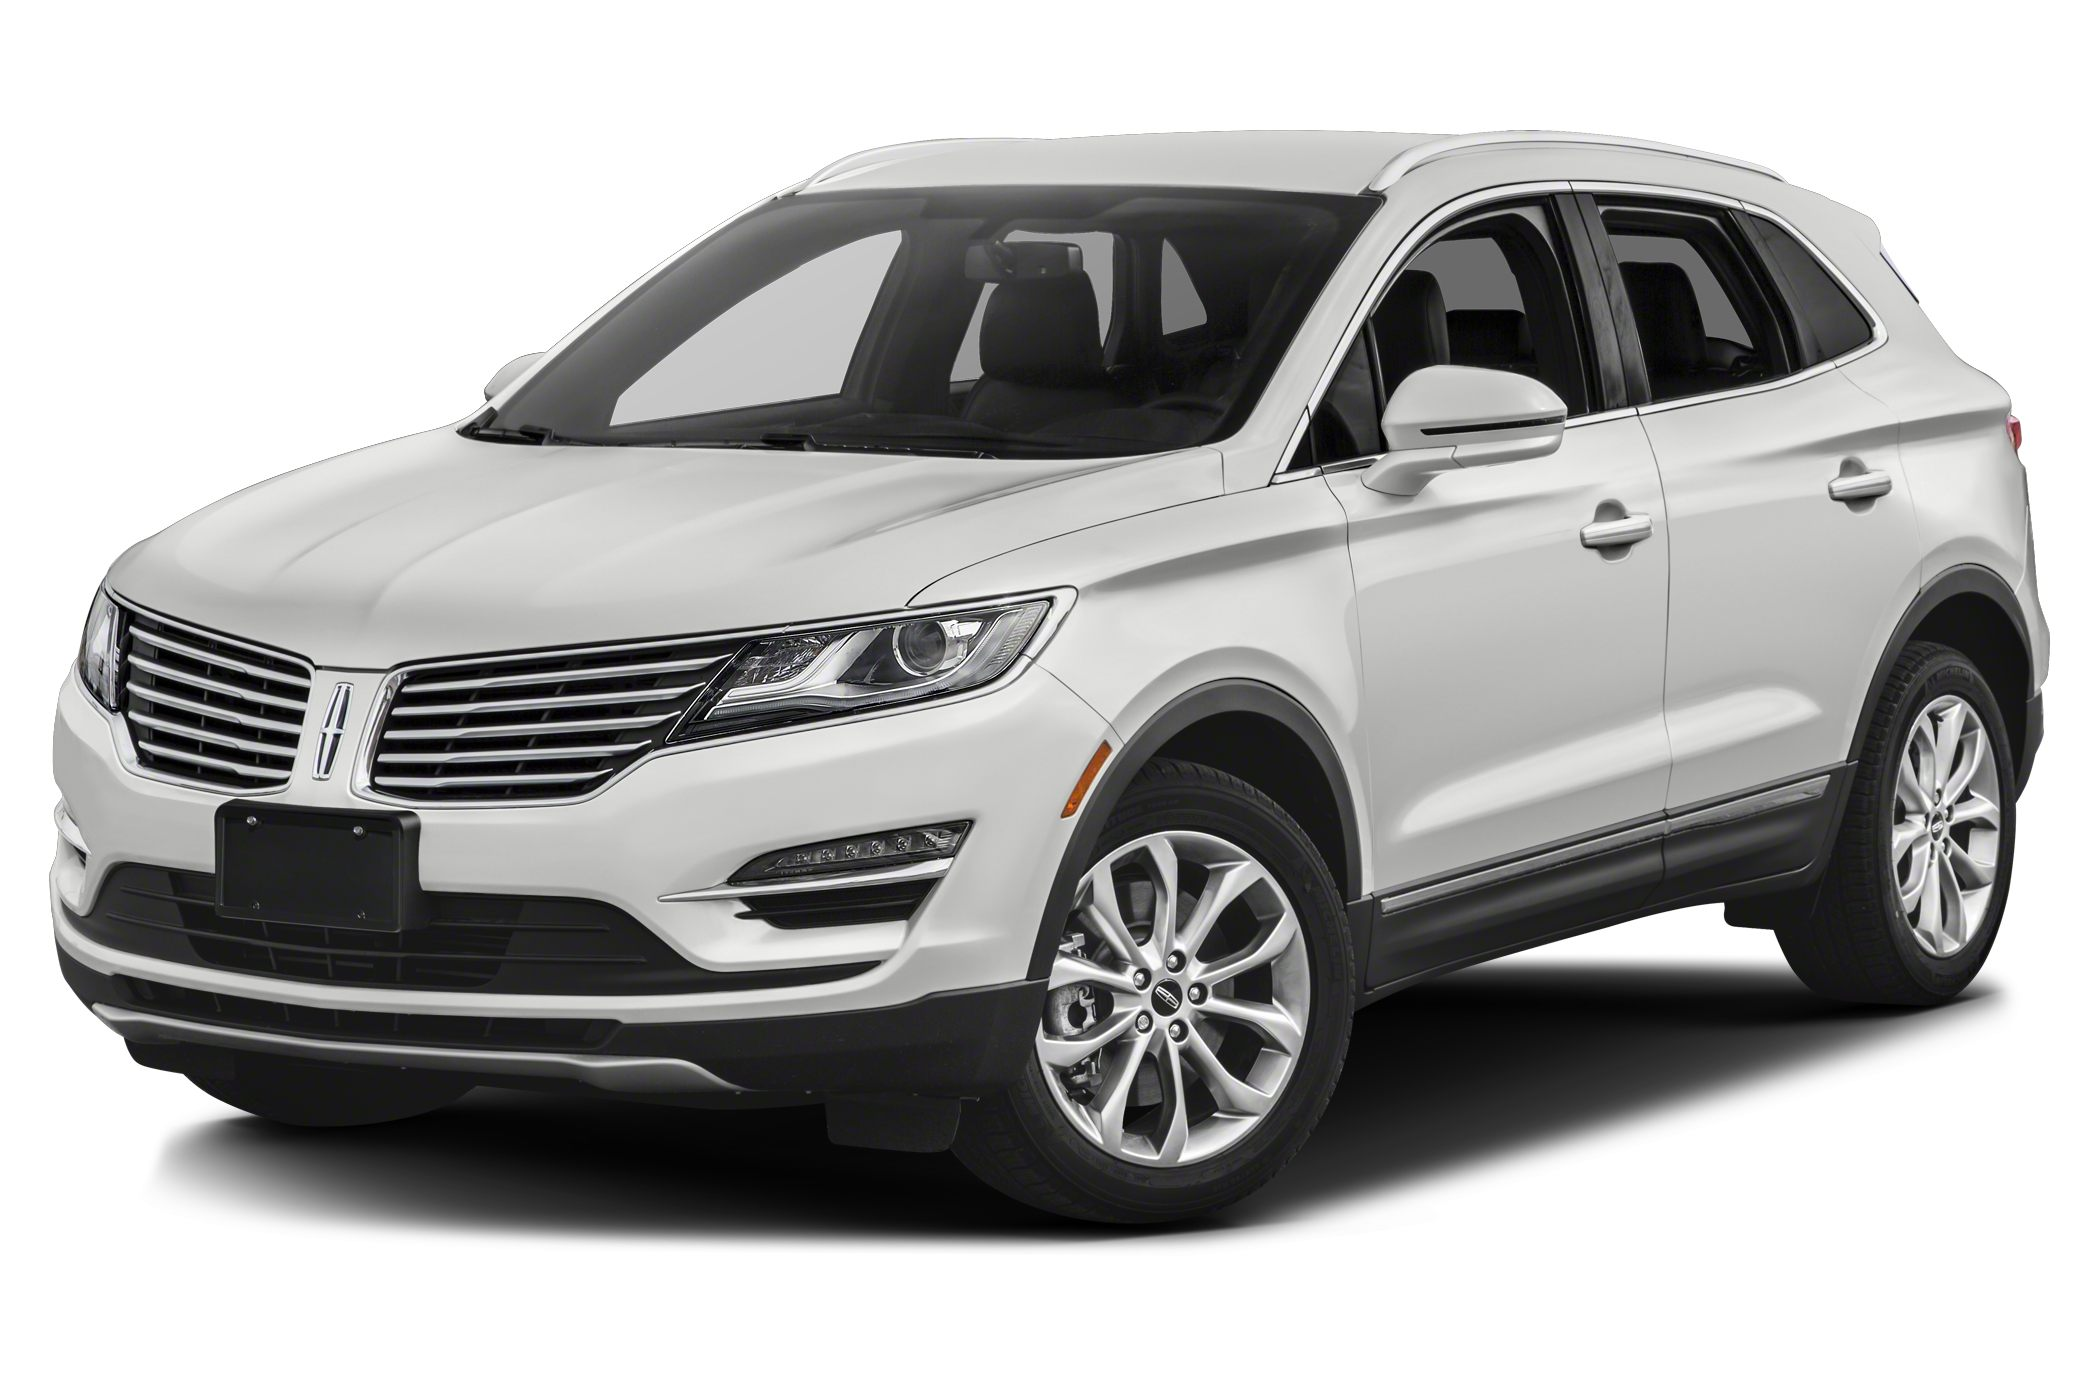 2015 Lincoln MKC Base SUV for sale in Bonita Springs for $38,375 with 10 miles.